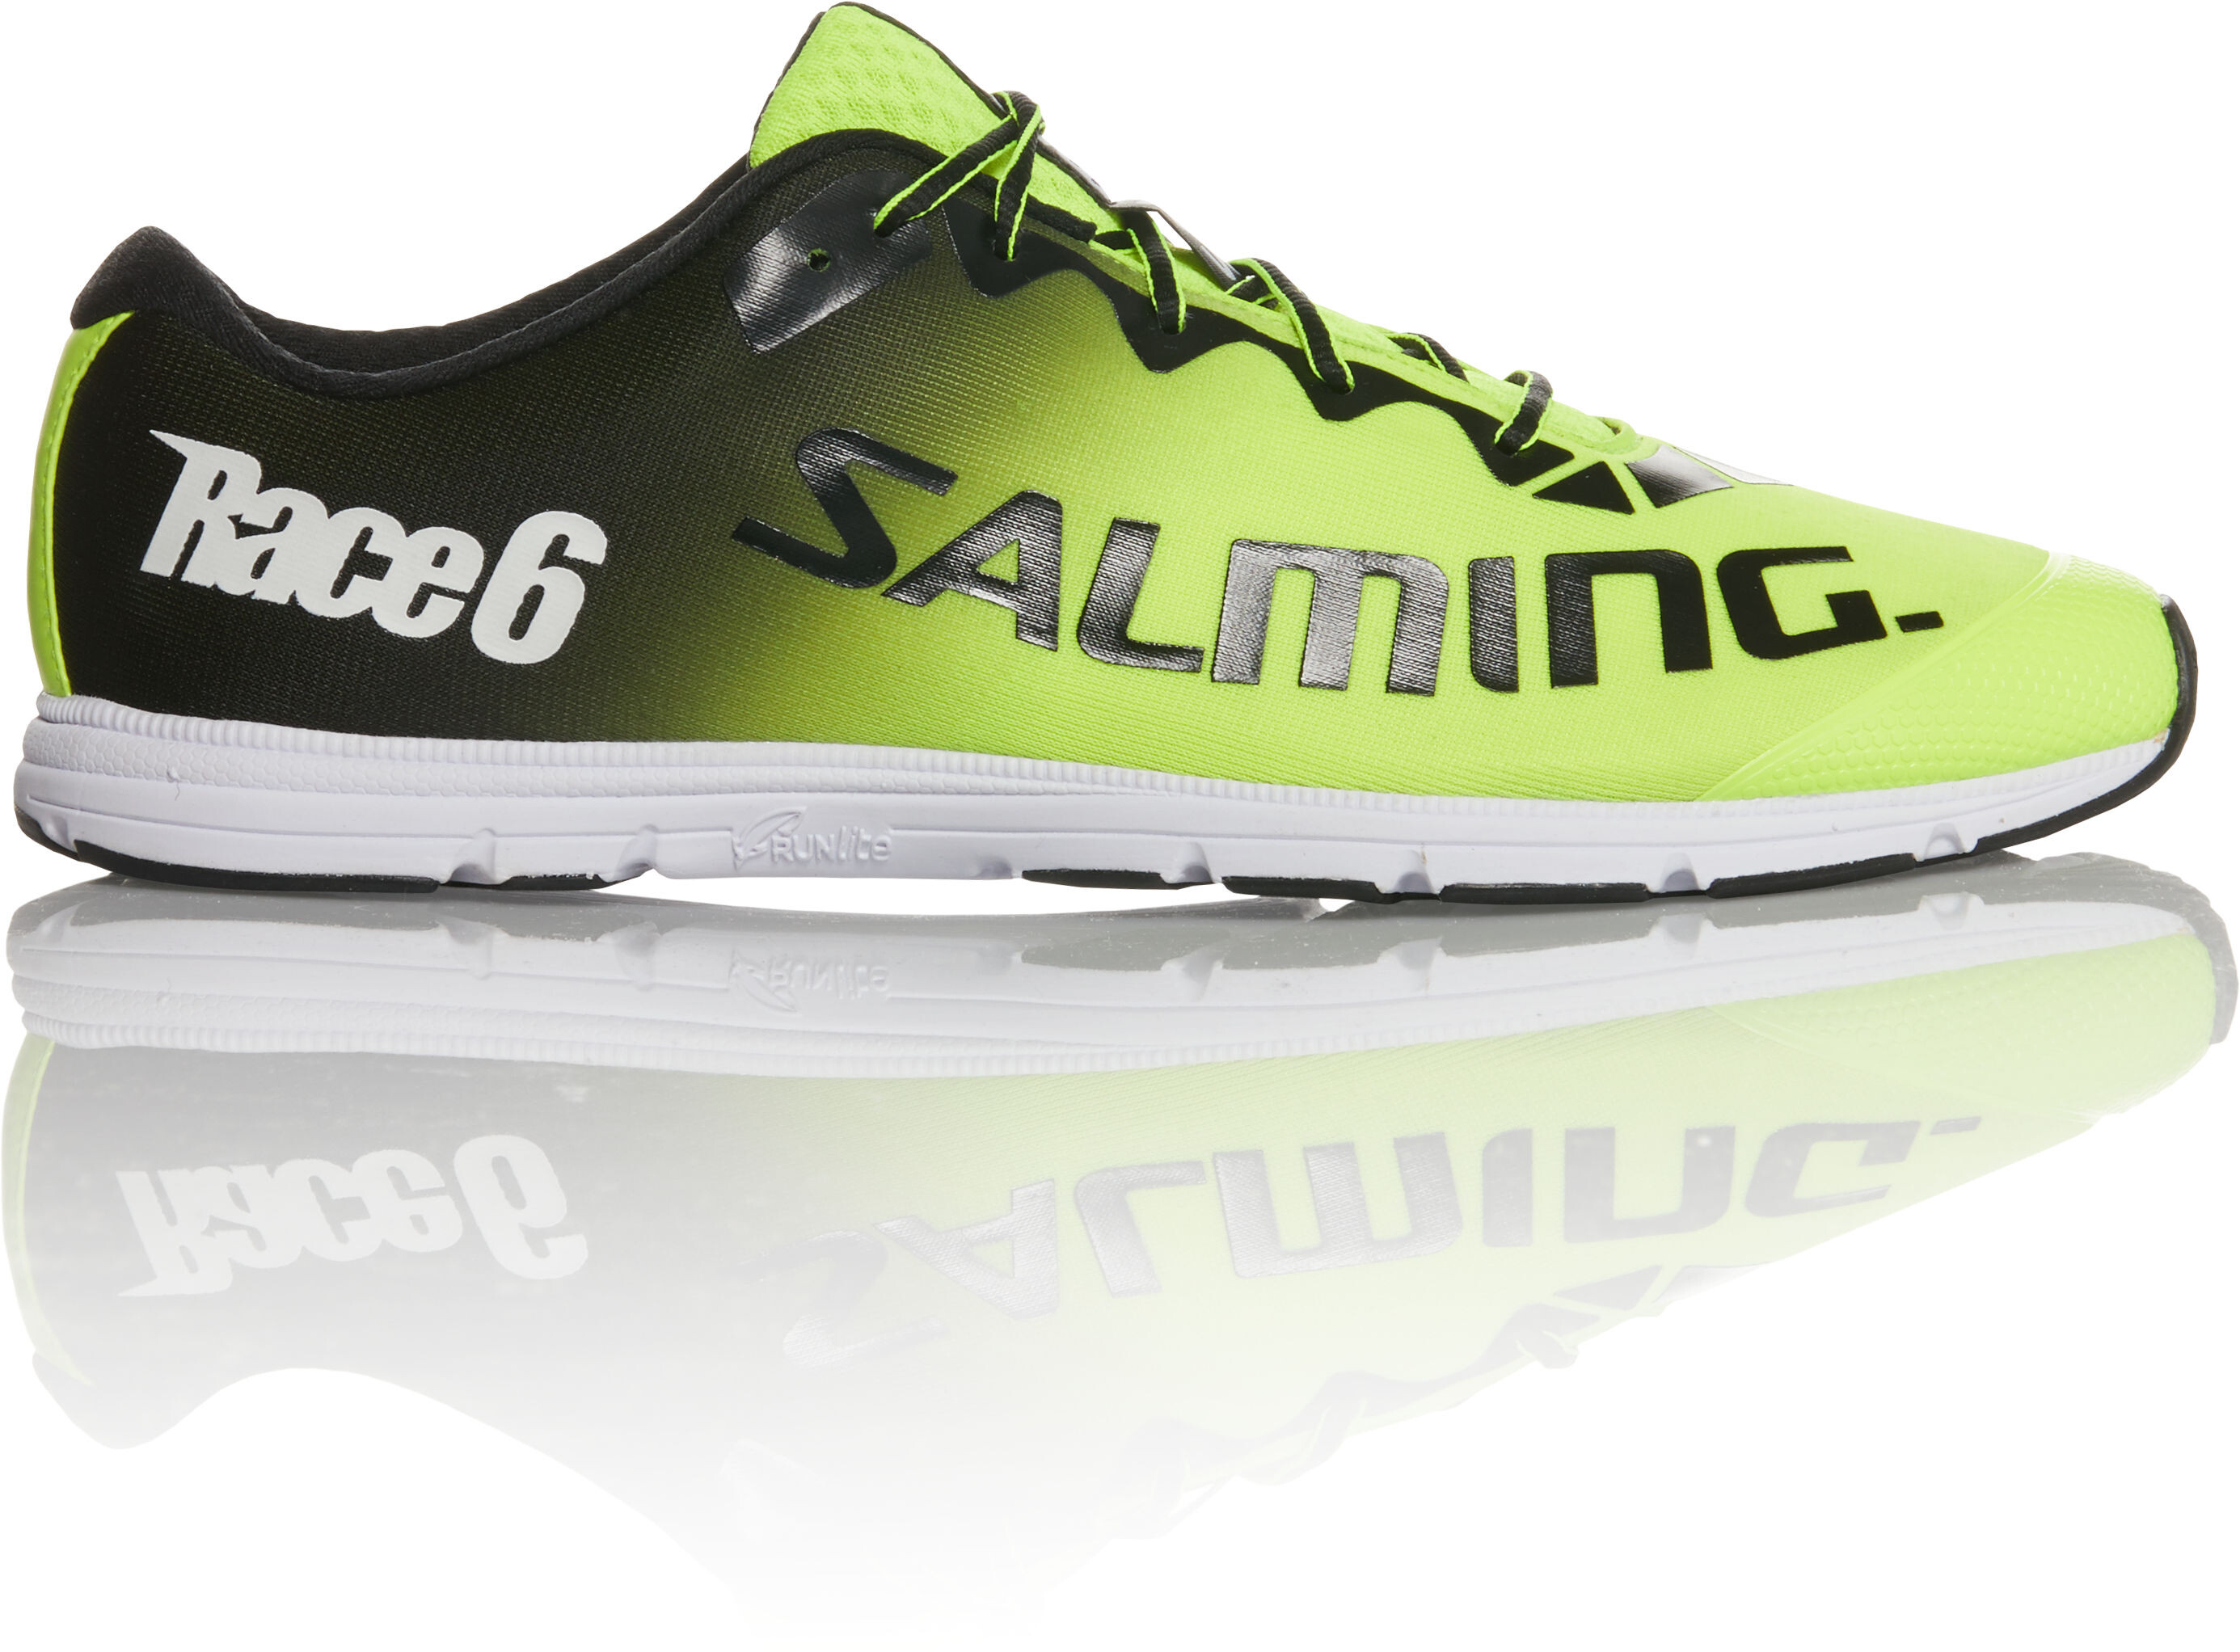 Salming Running Shoes True To Size